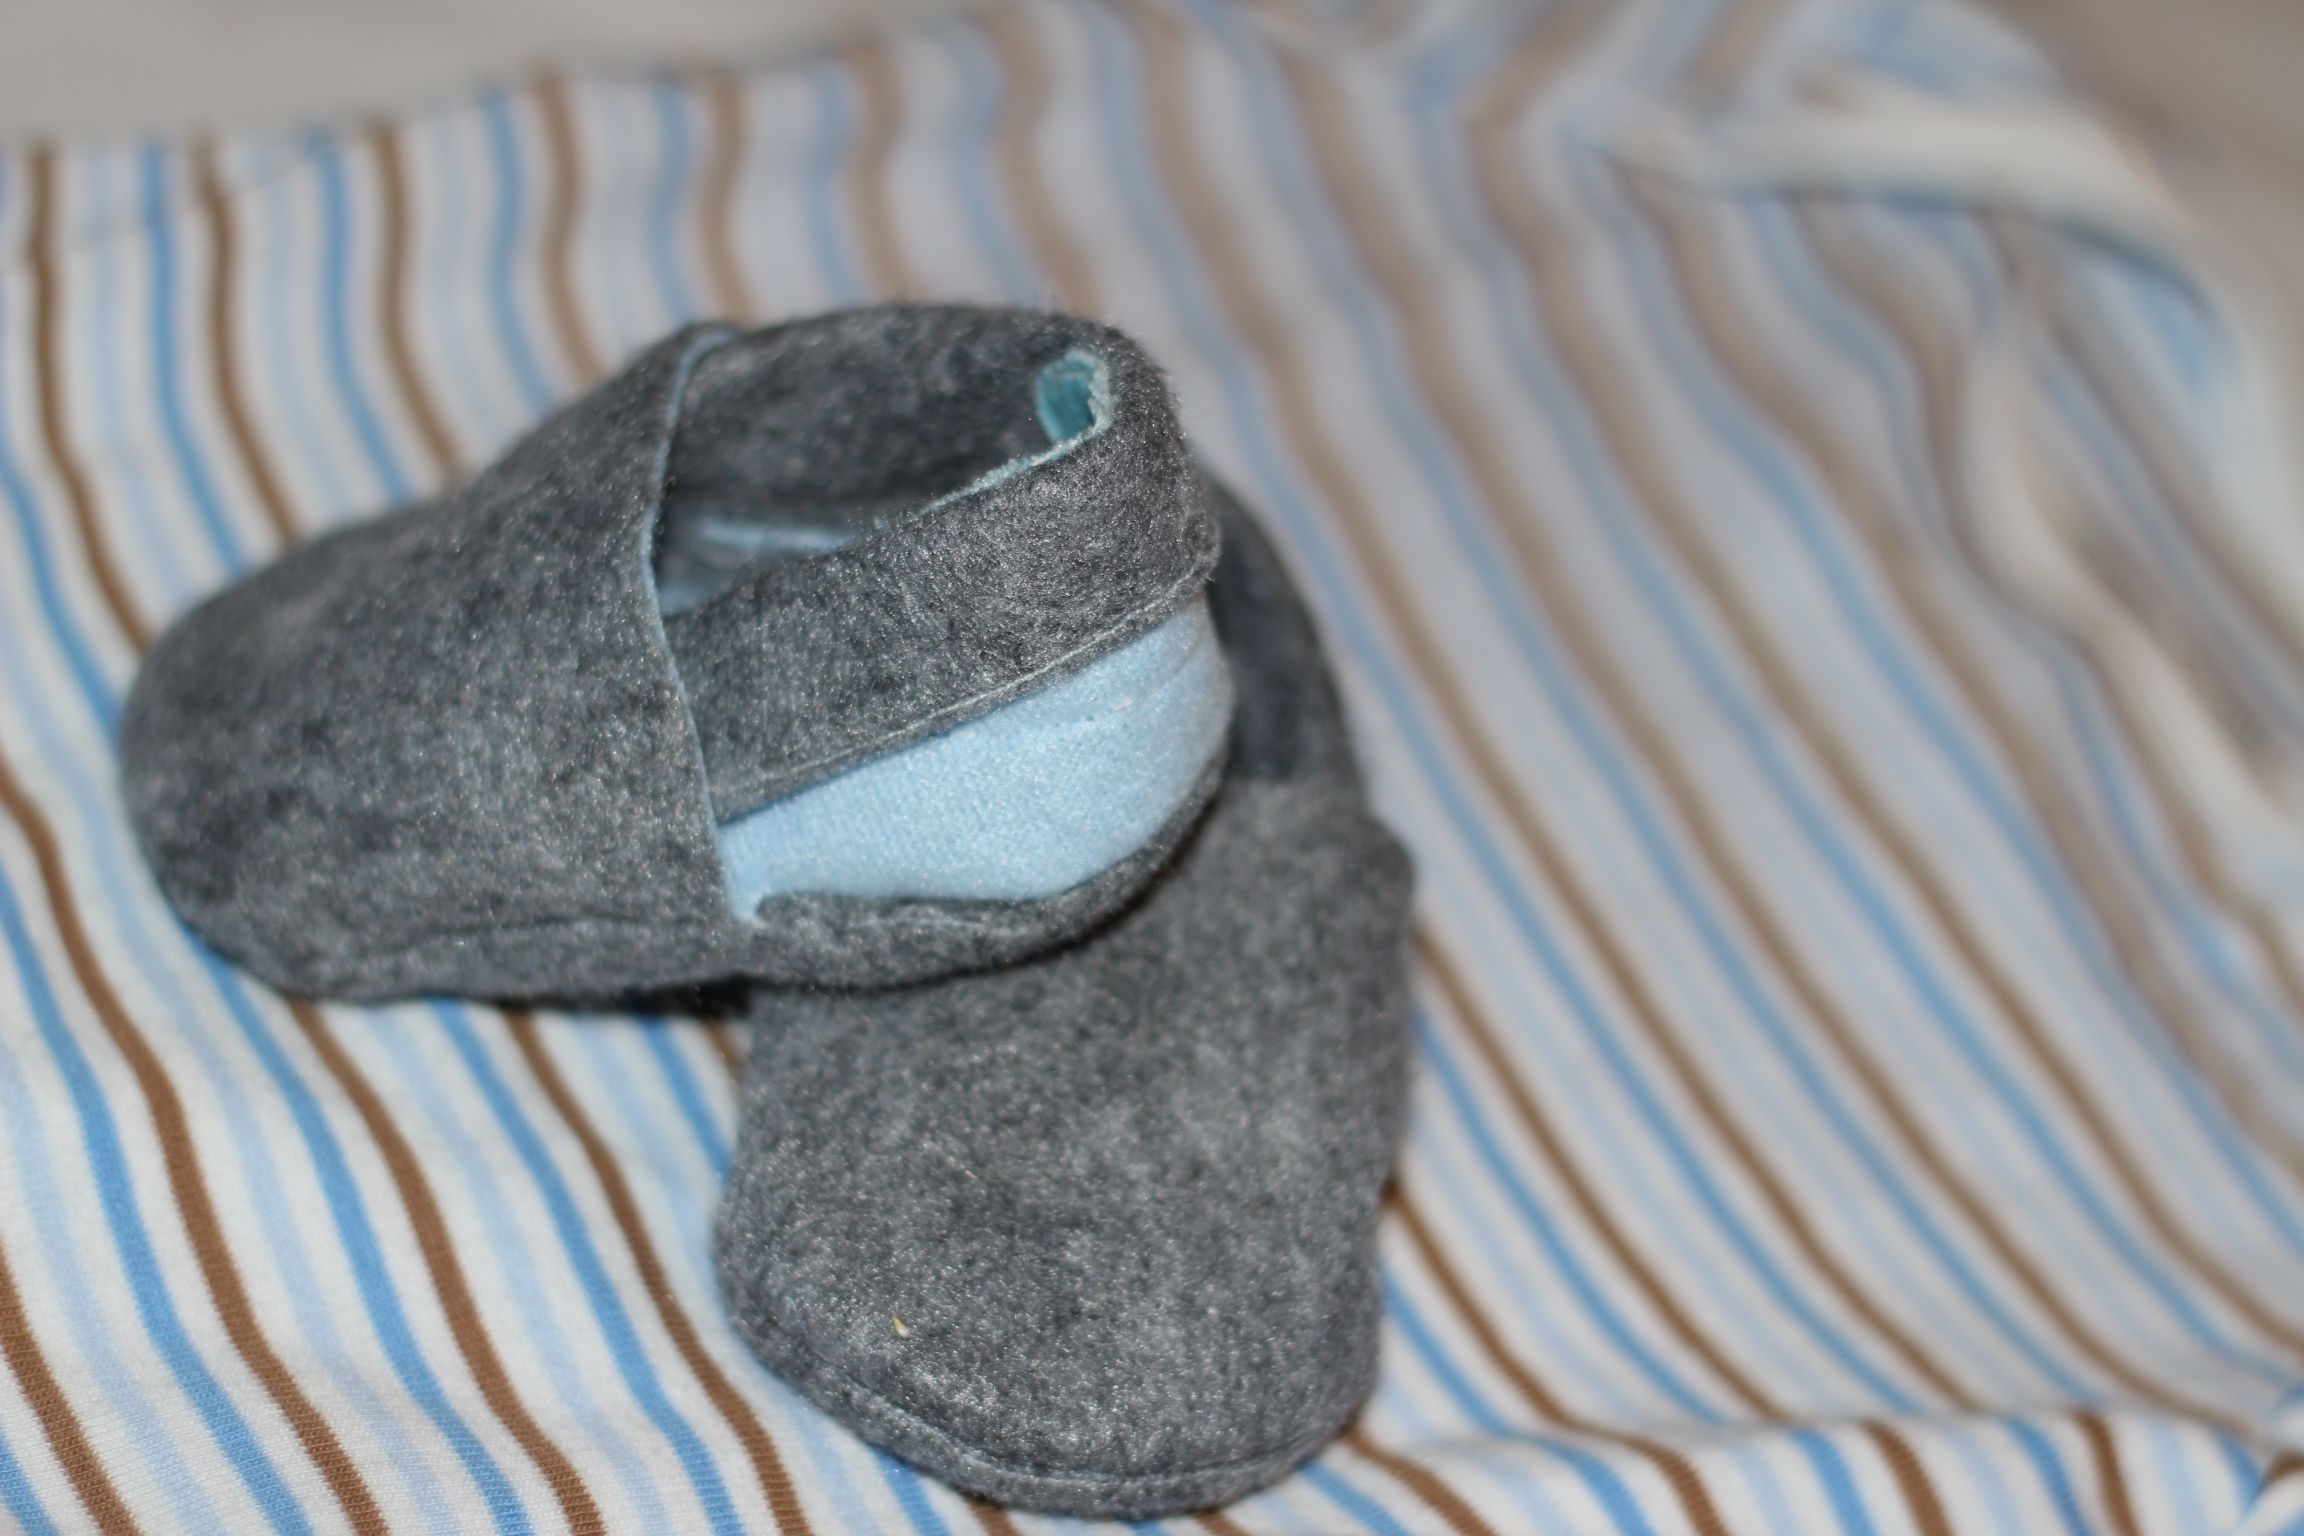 Add a bit of personalization to a store bought baby gift? Make a pair of baby shoes that will 'go' with your purchase! Lots of tutorials here on Pinterest- that is we're i found this one. Baby blue & grey turned out adorable!